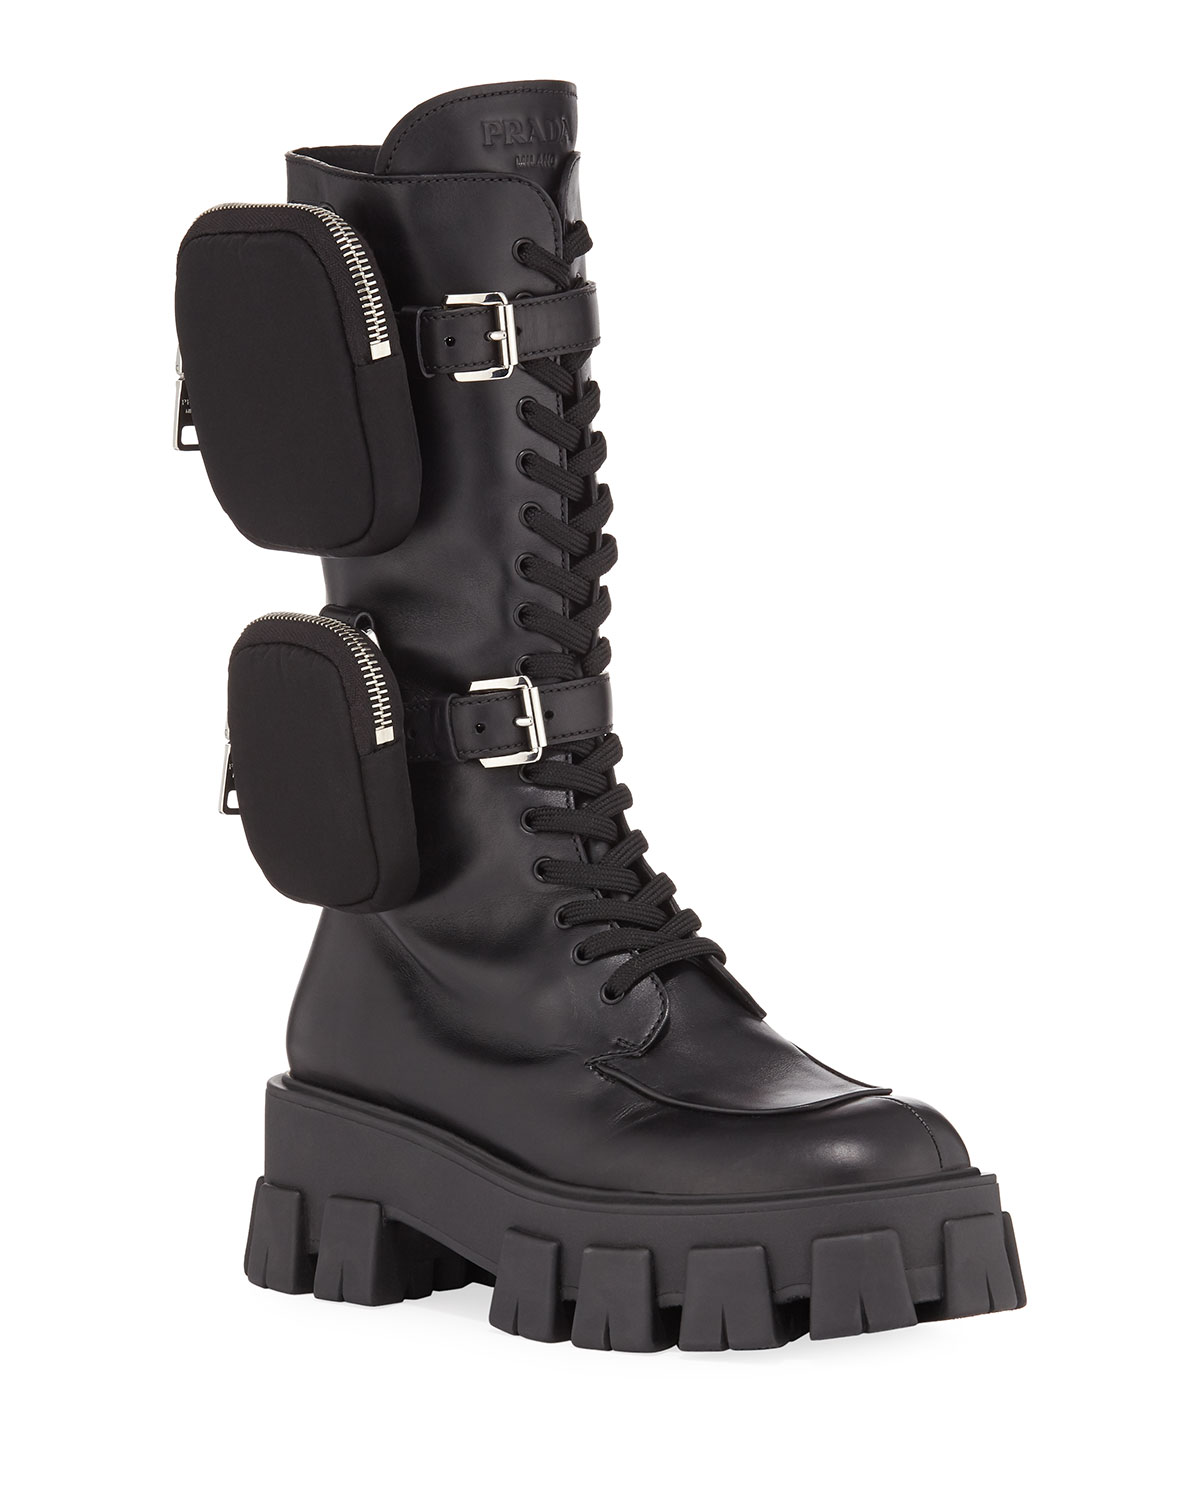 Exact Product: 55mm Lace-Up Zip Pouch Platform Moto Boots, Brand: Prada, Available on: neimanmarcus.com